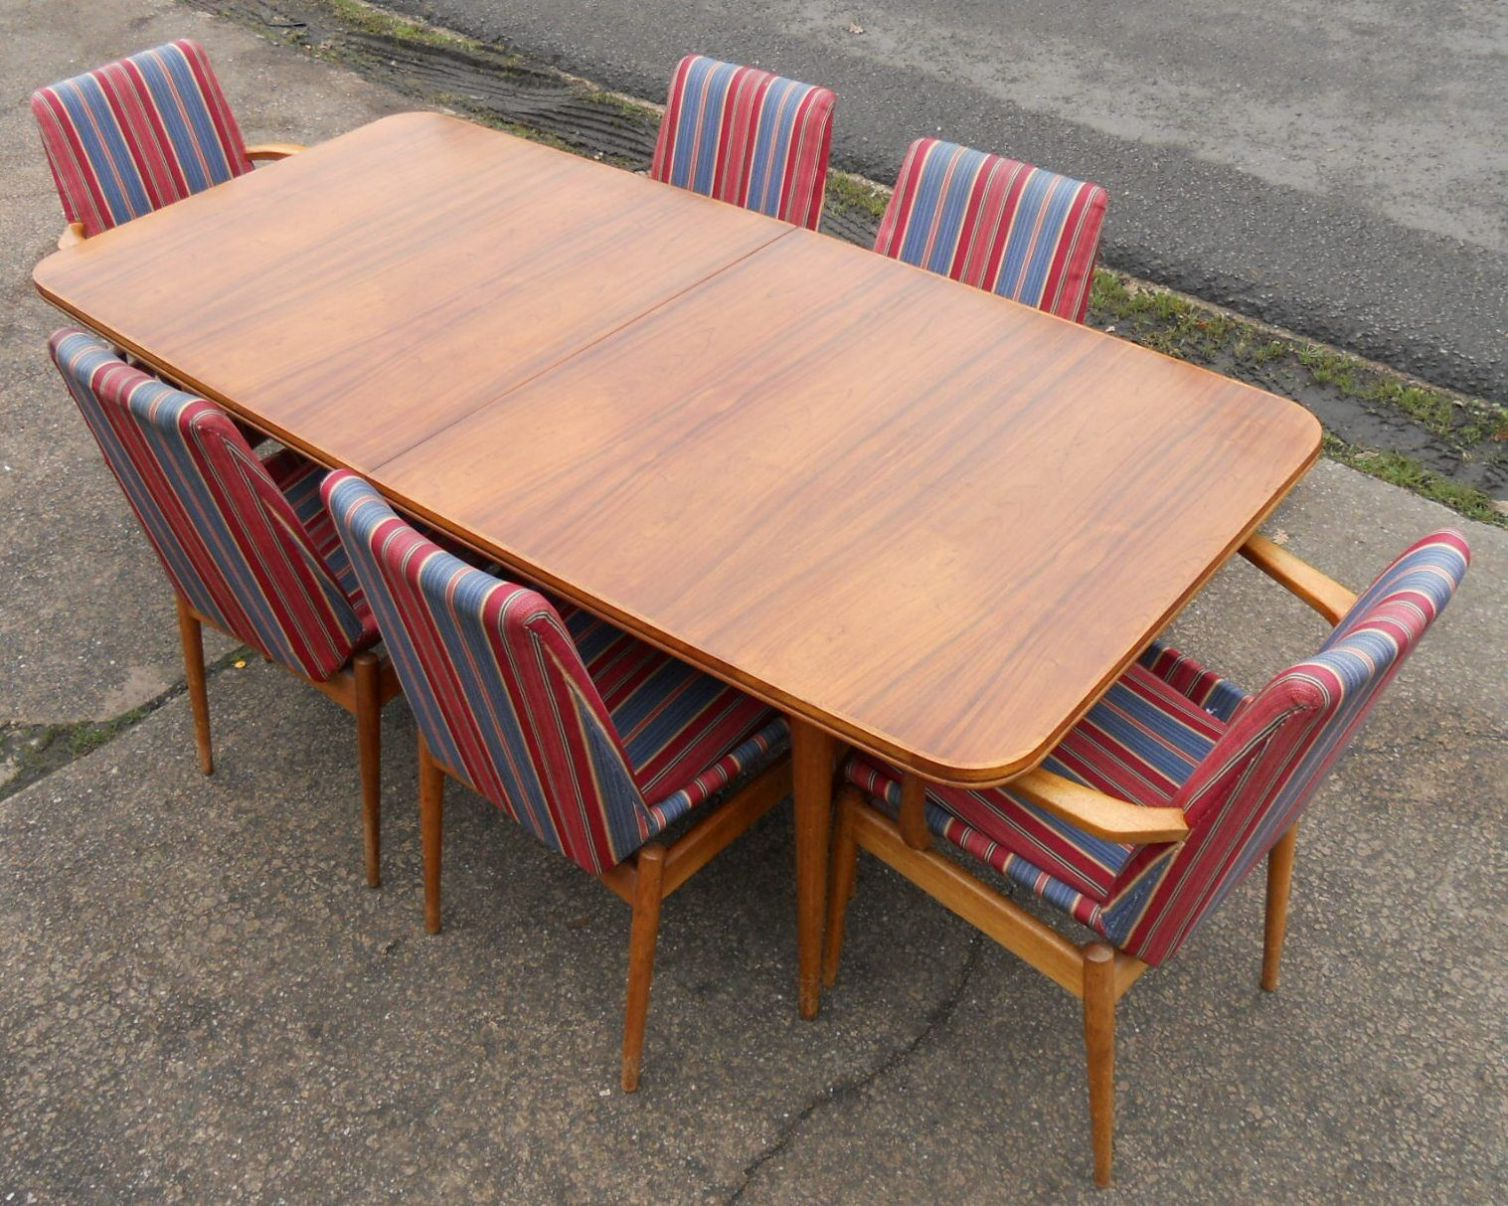 Archie shine rosewood teak dining room suite by robert for G plan heritage dining room furniture